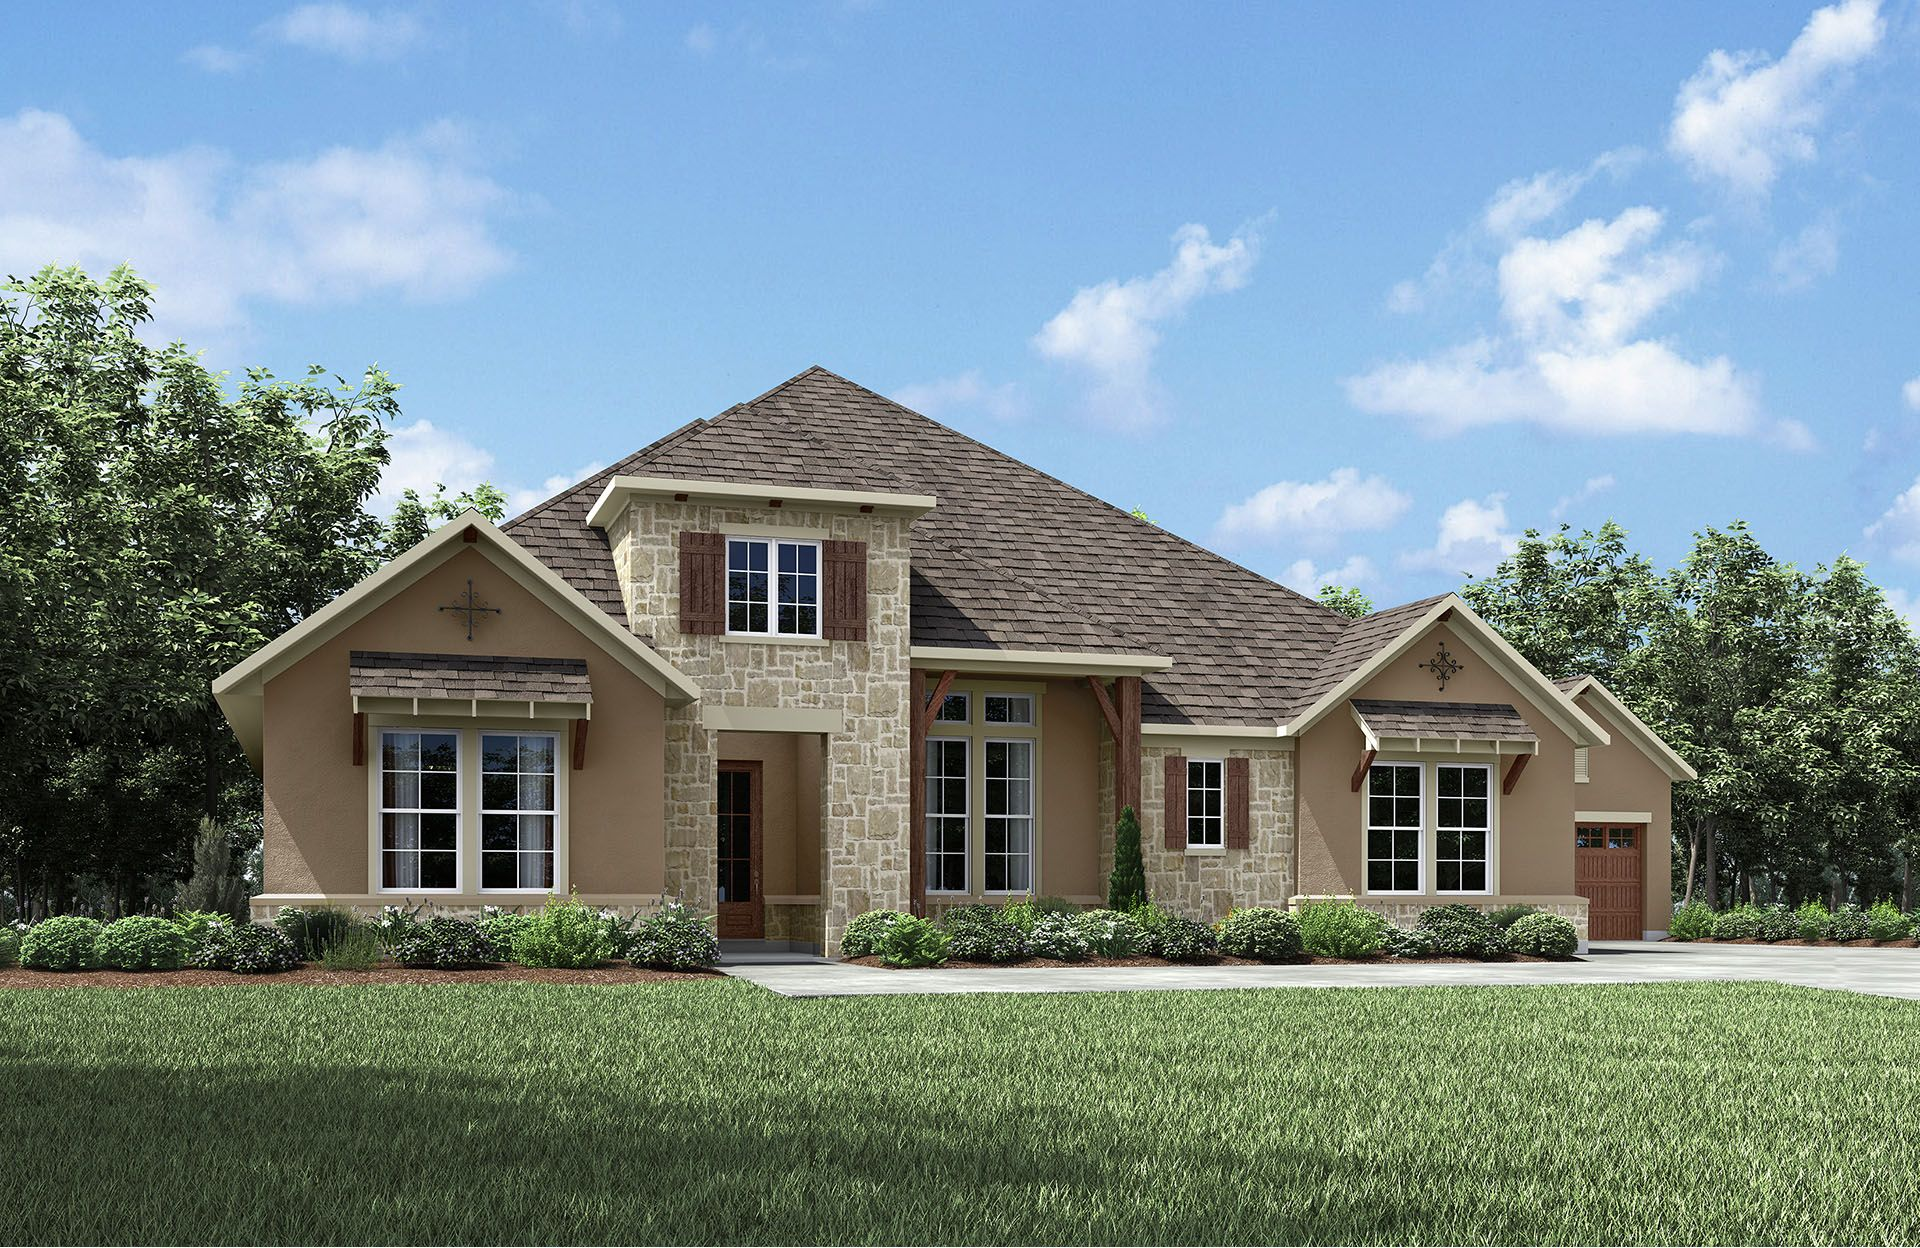 Single Family for Sale at Royal Brook At Kingwood - Castella Ii 3306 Lockridge Harbor Lane Porter, Texas 77365 United States